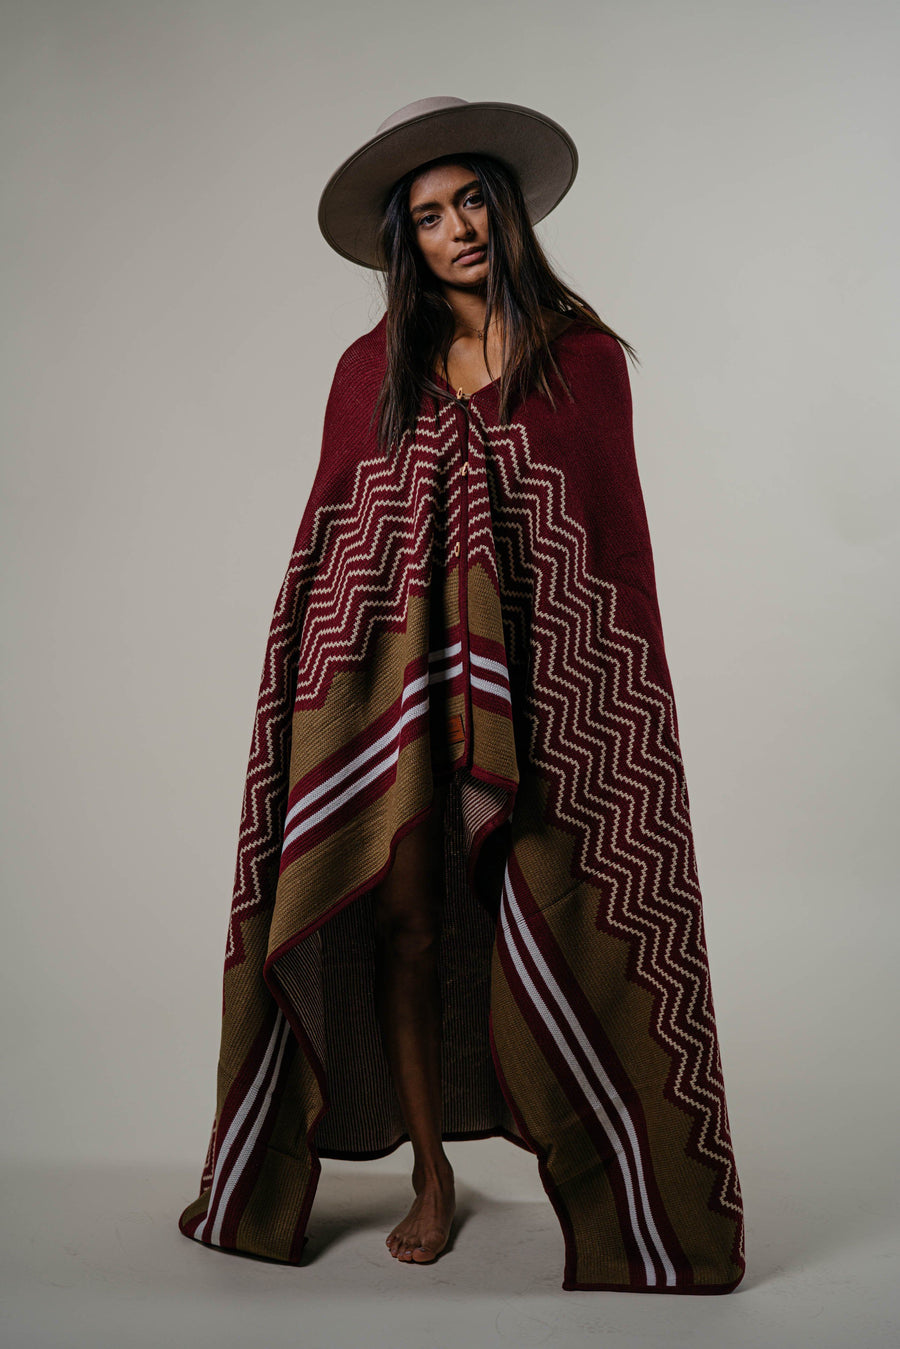 Explorers Wraparound Blanket // Coastal Sunset Edition - Wondery, A Parks Apparel Brand